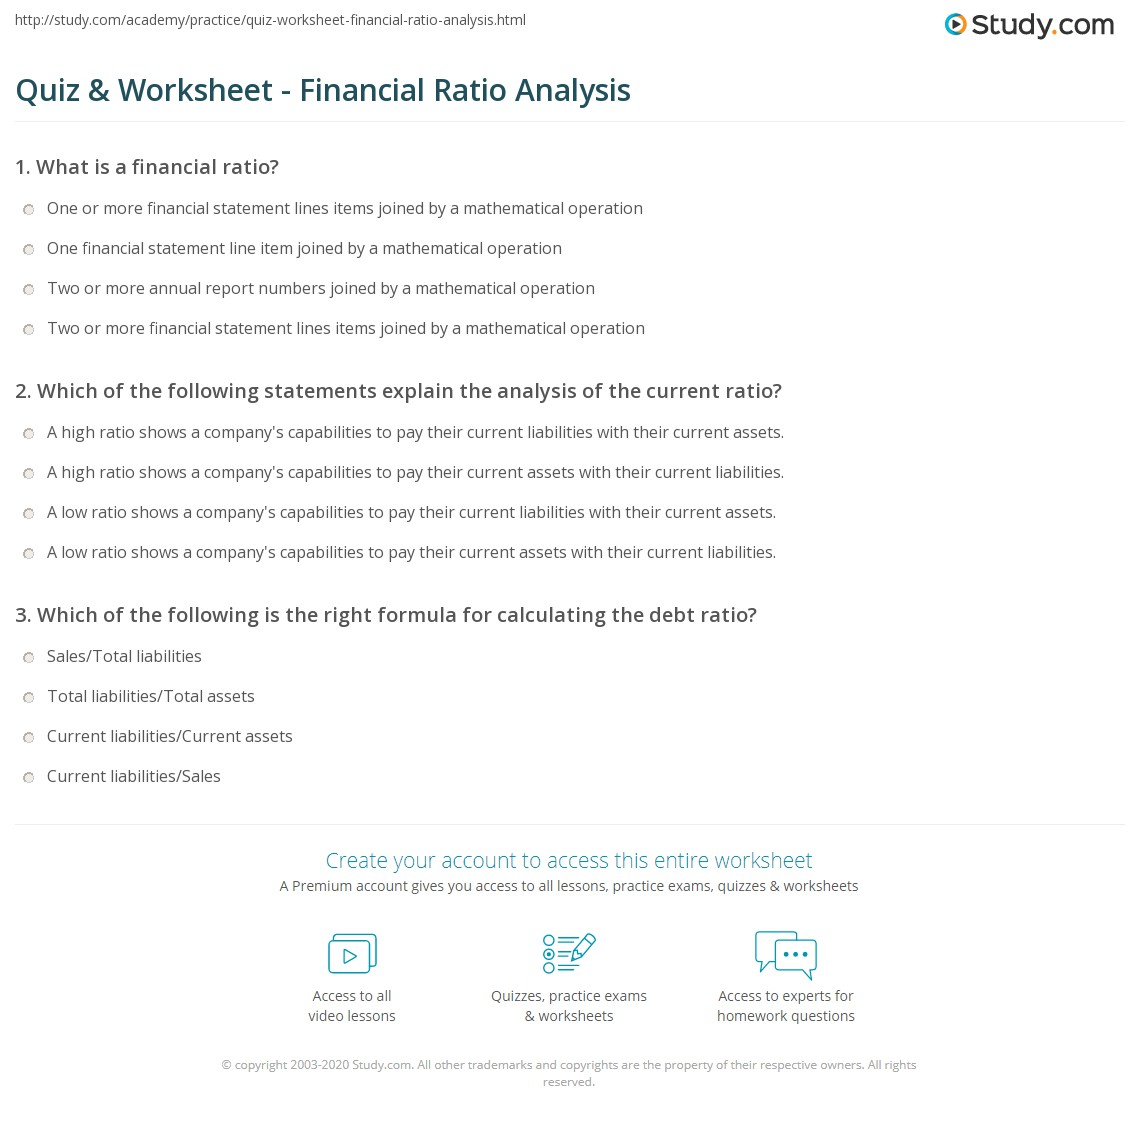 print defining and applying financial ratio analysis worksheet